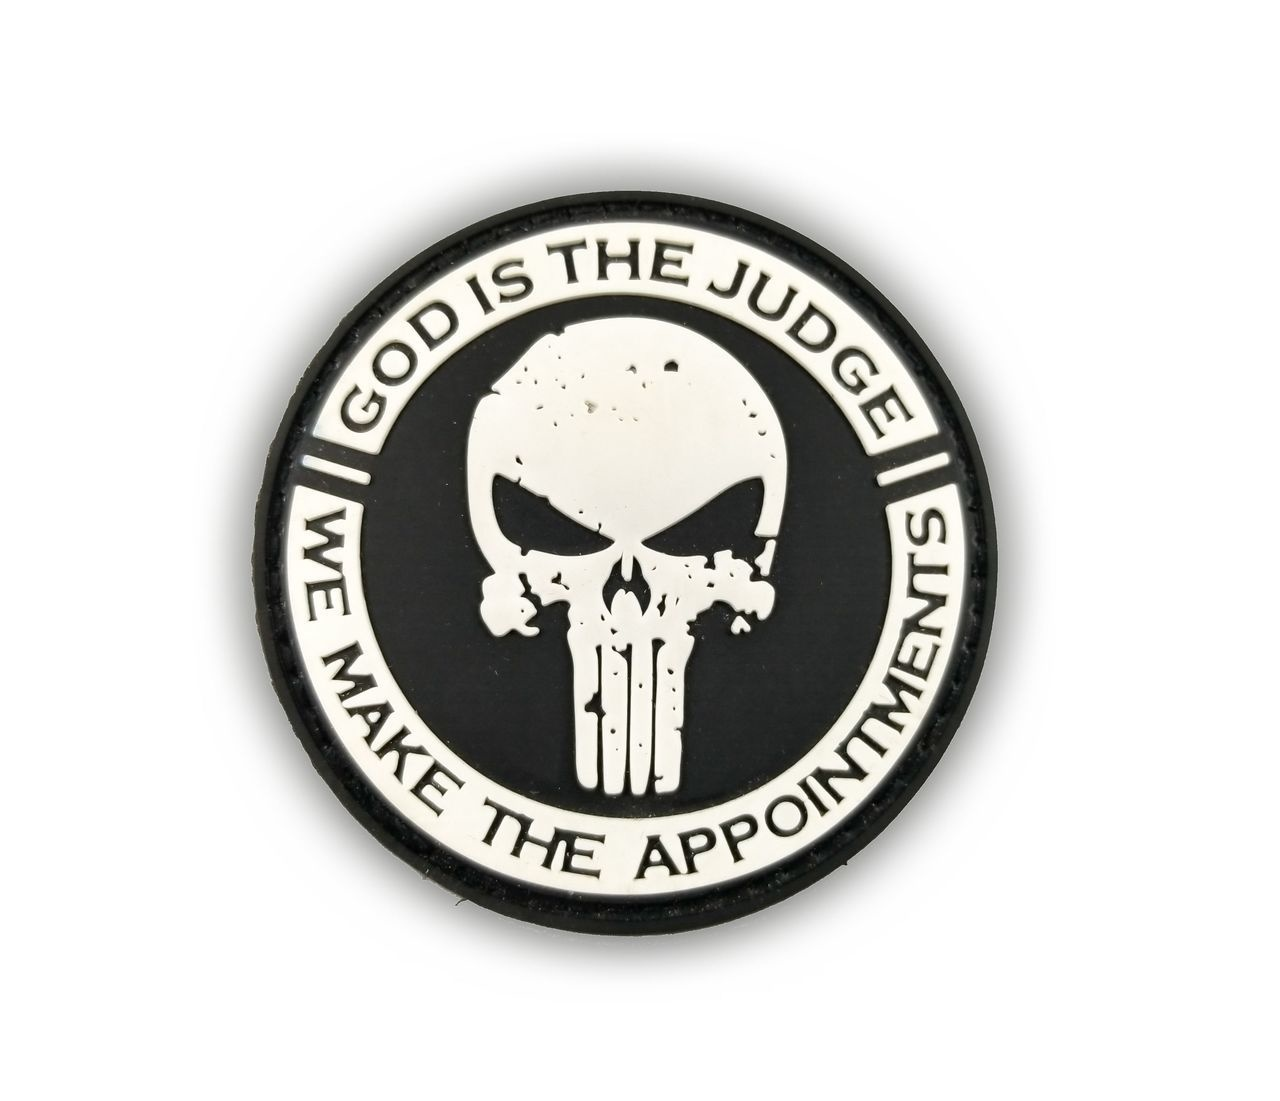 Tactical Innovations Canada PVC Patch - God is the Judge - Black/White